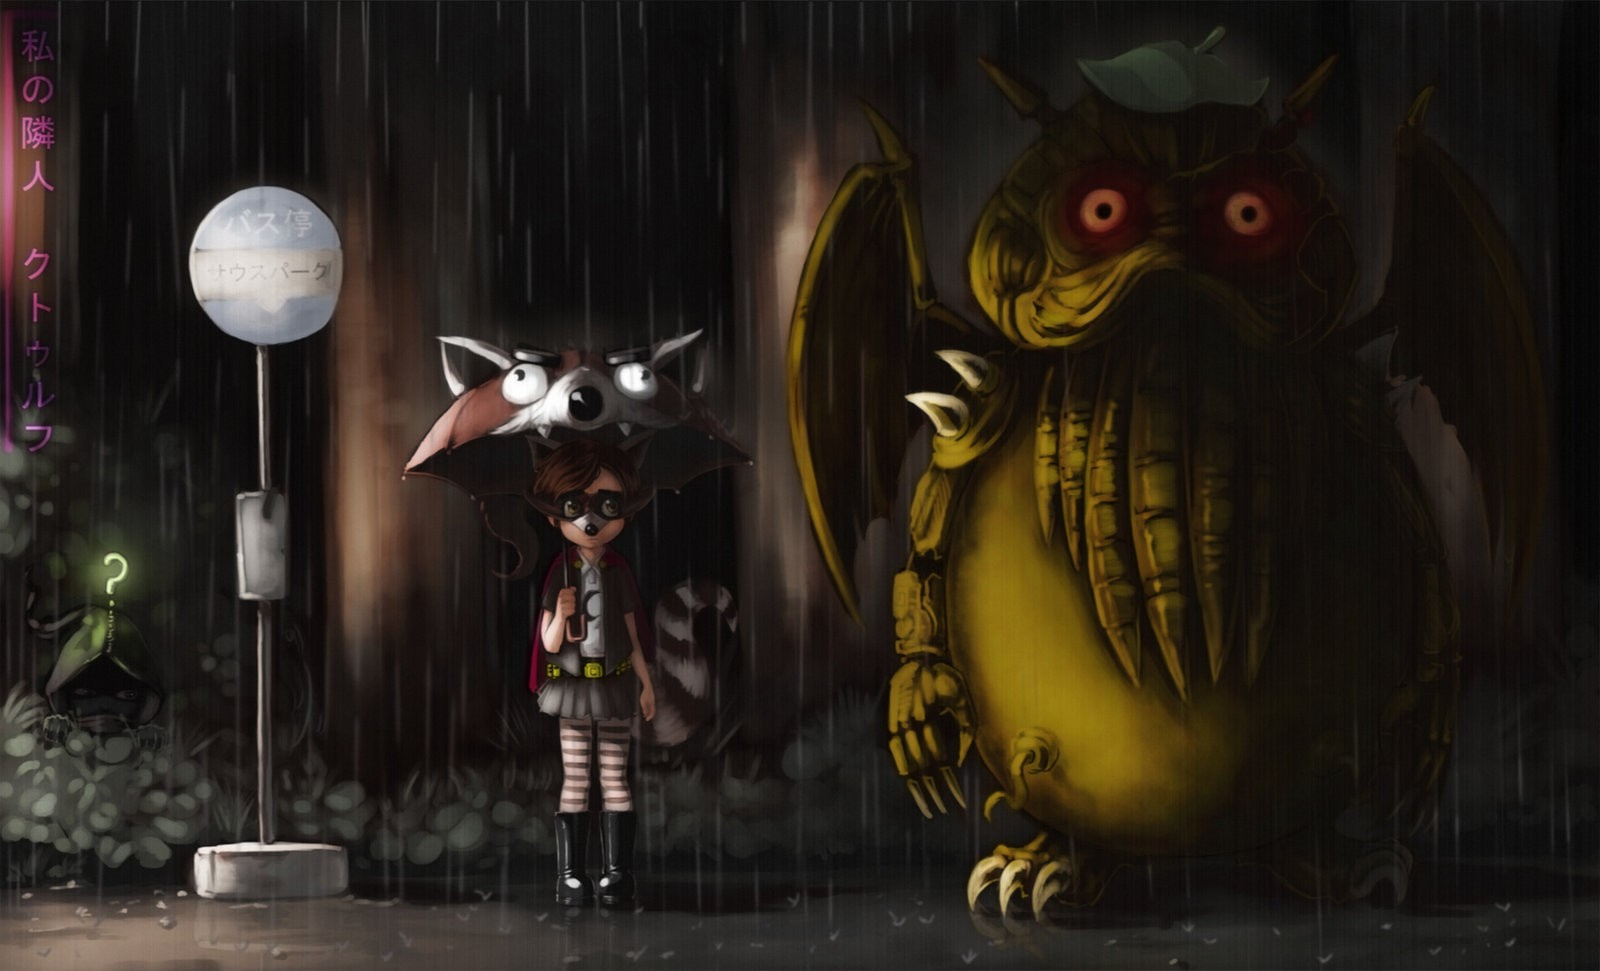 Anime 1600x971 My Neighbor Totoro fan art Cthulhu Studio Ghibli artwork digital art rain umbrella anime crossover animated movies South Park